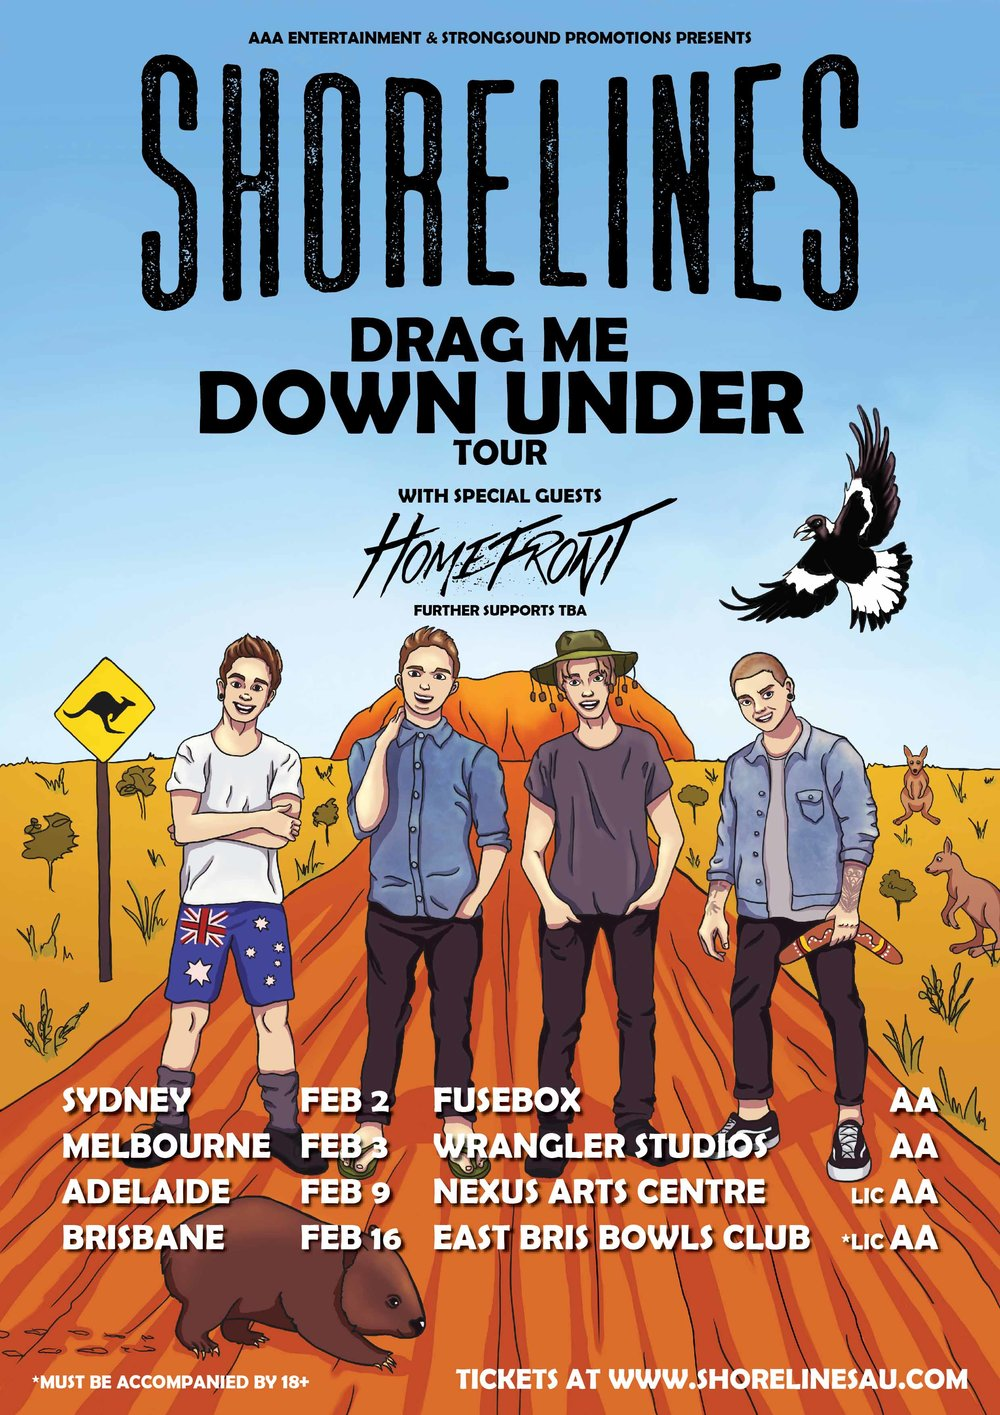 COMP DRAG ME DOWN UNDER TOUR POSTER-01.jpg